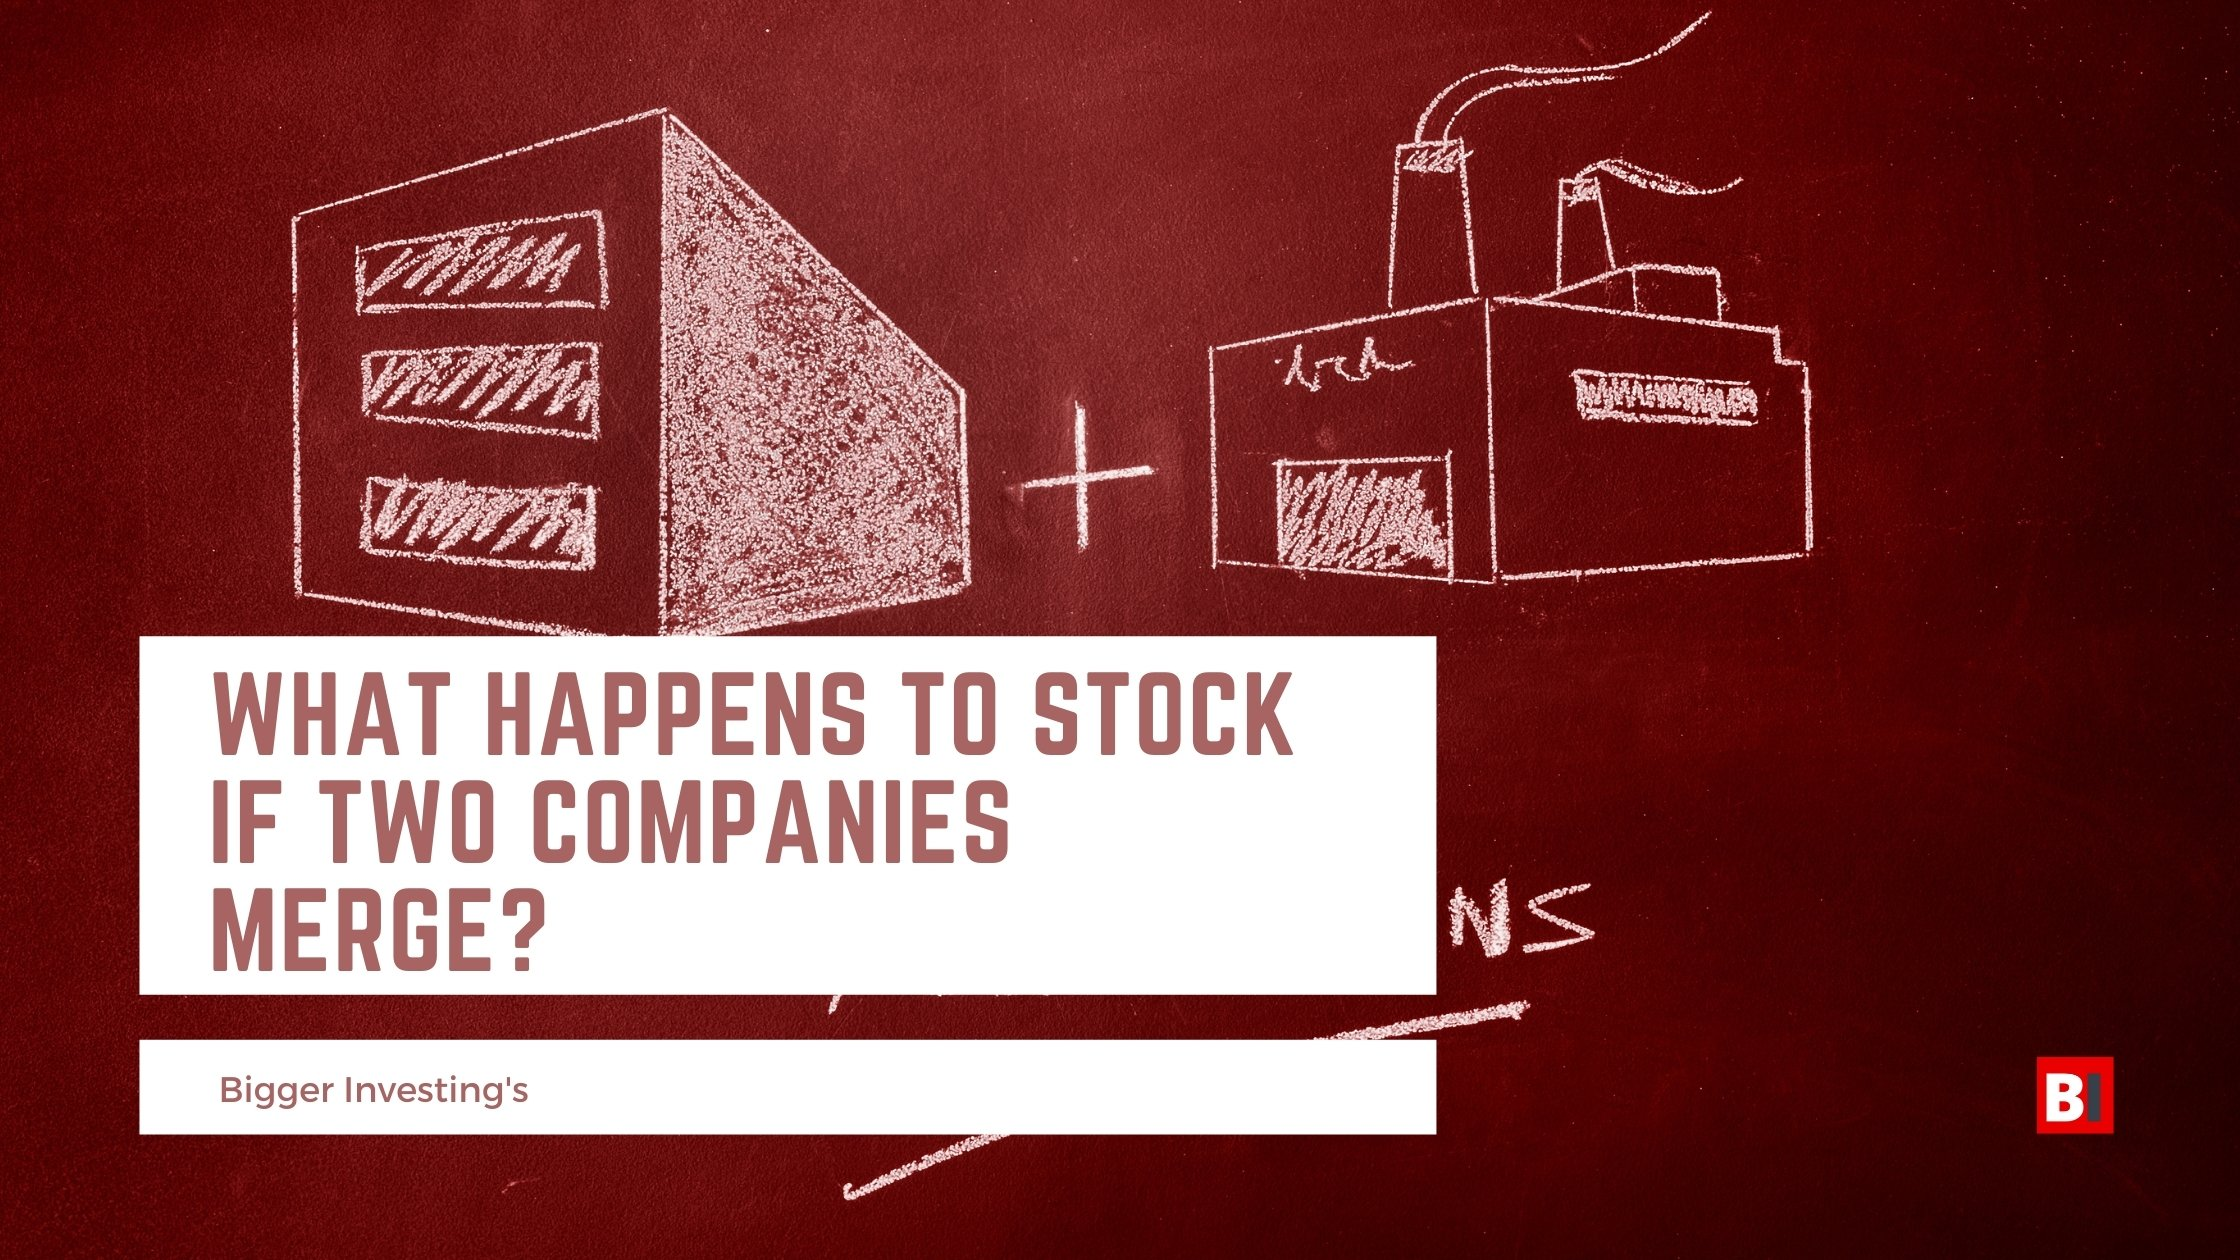 What Happens to Stock if Two Companies Merge?